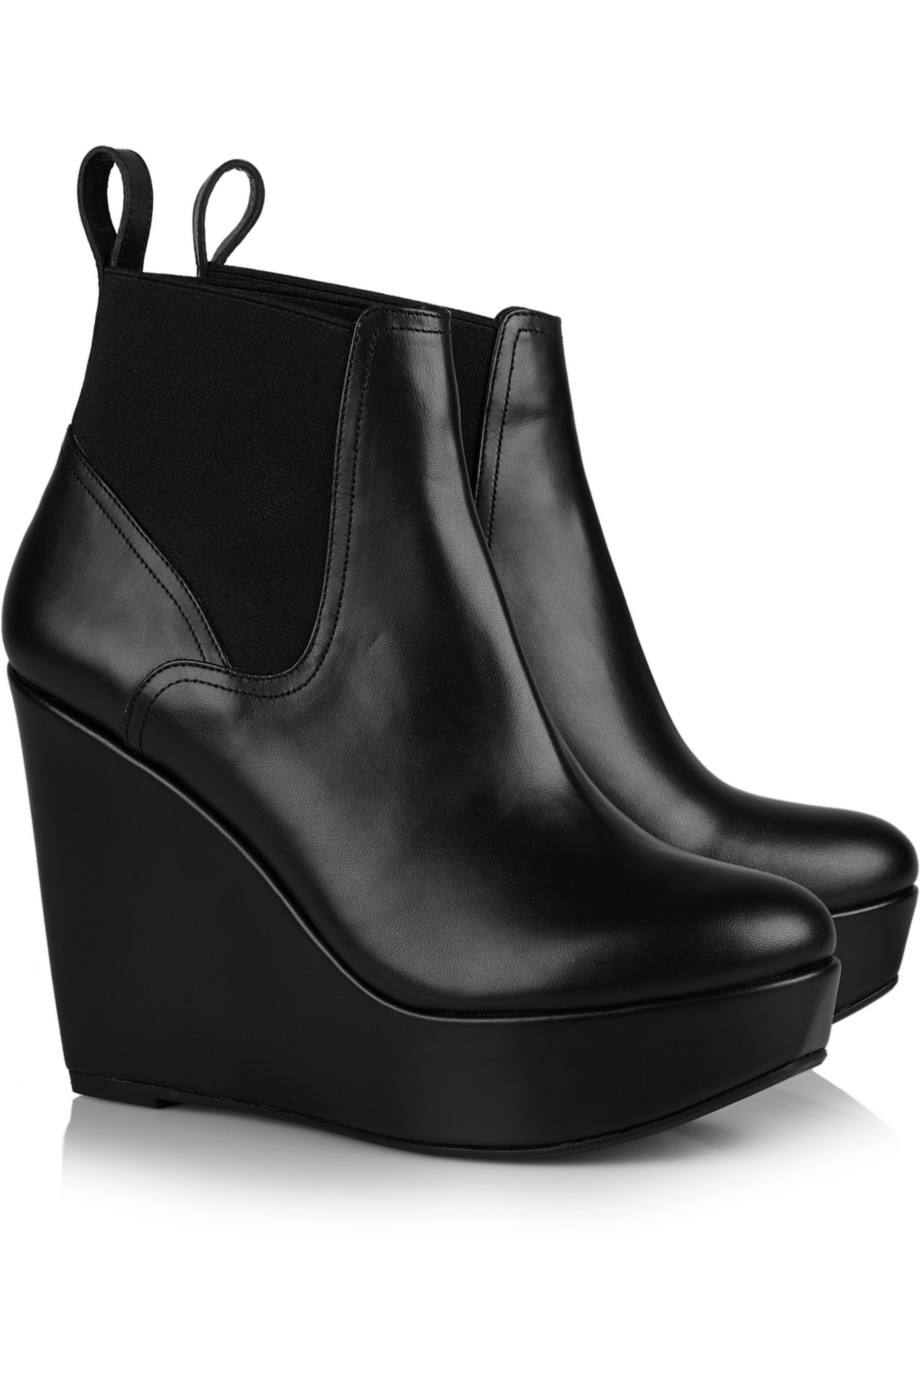 77596b2d599d Robert Clergerie Fille Leather Wedge Ankle Boots in Black - Lyst